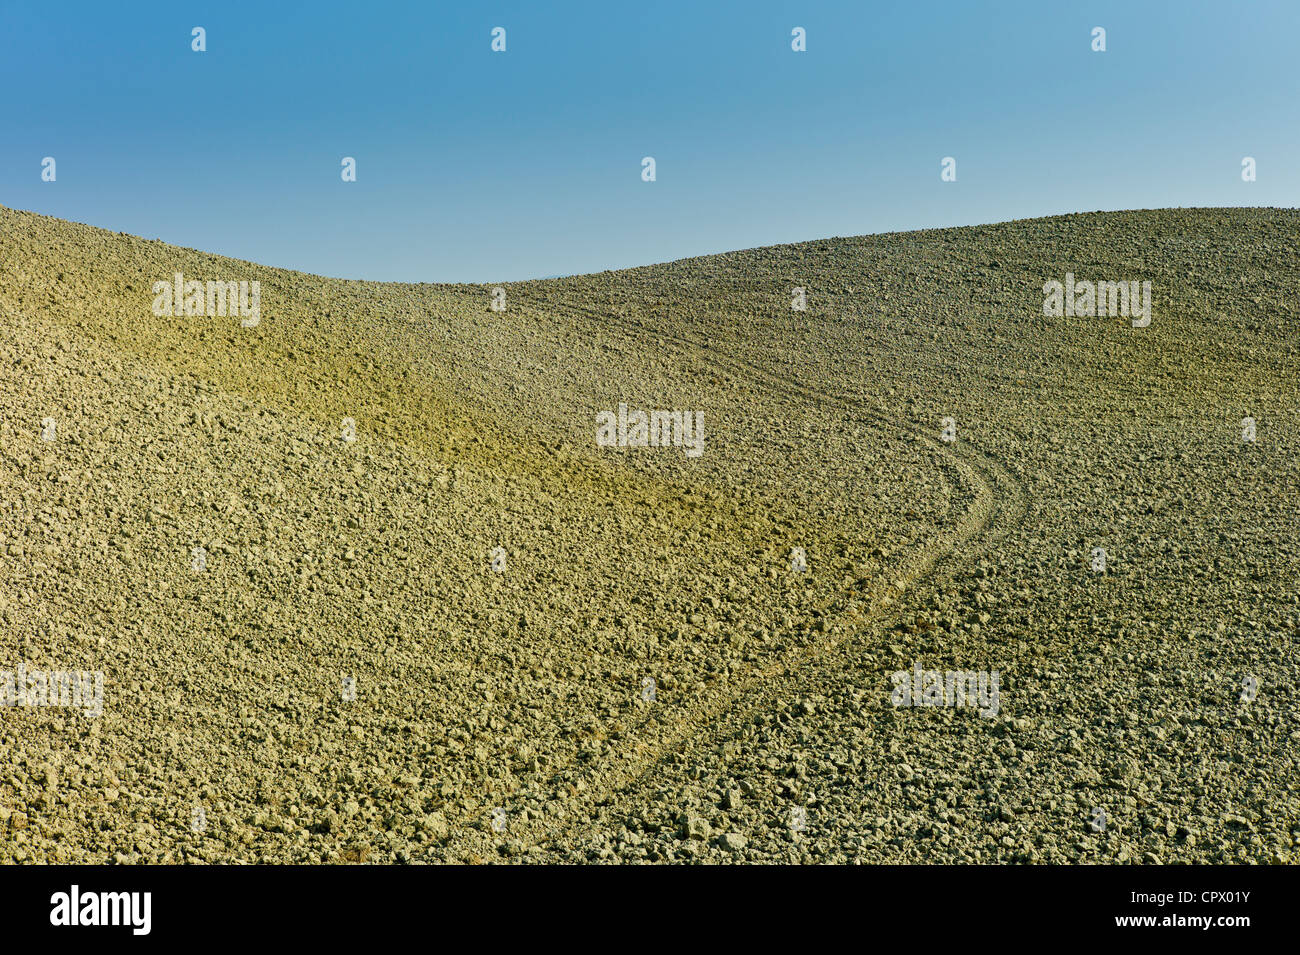 Tuscan parched landscape sun-baked soil in Val D'Orcia, Tuscany, Italy - Stock Image